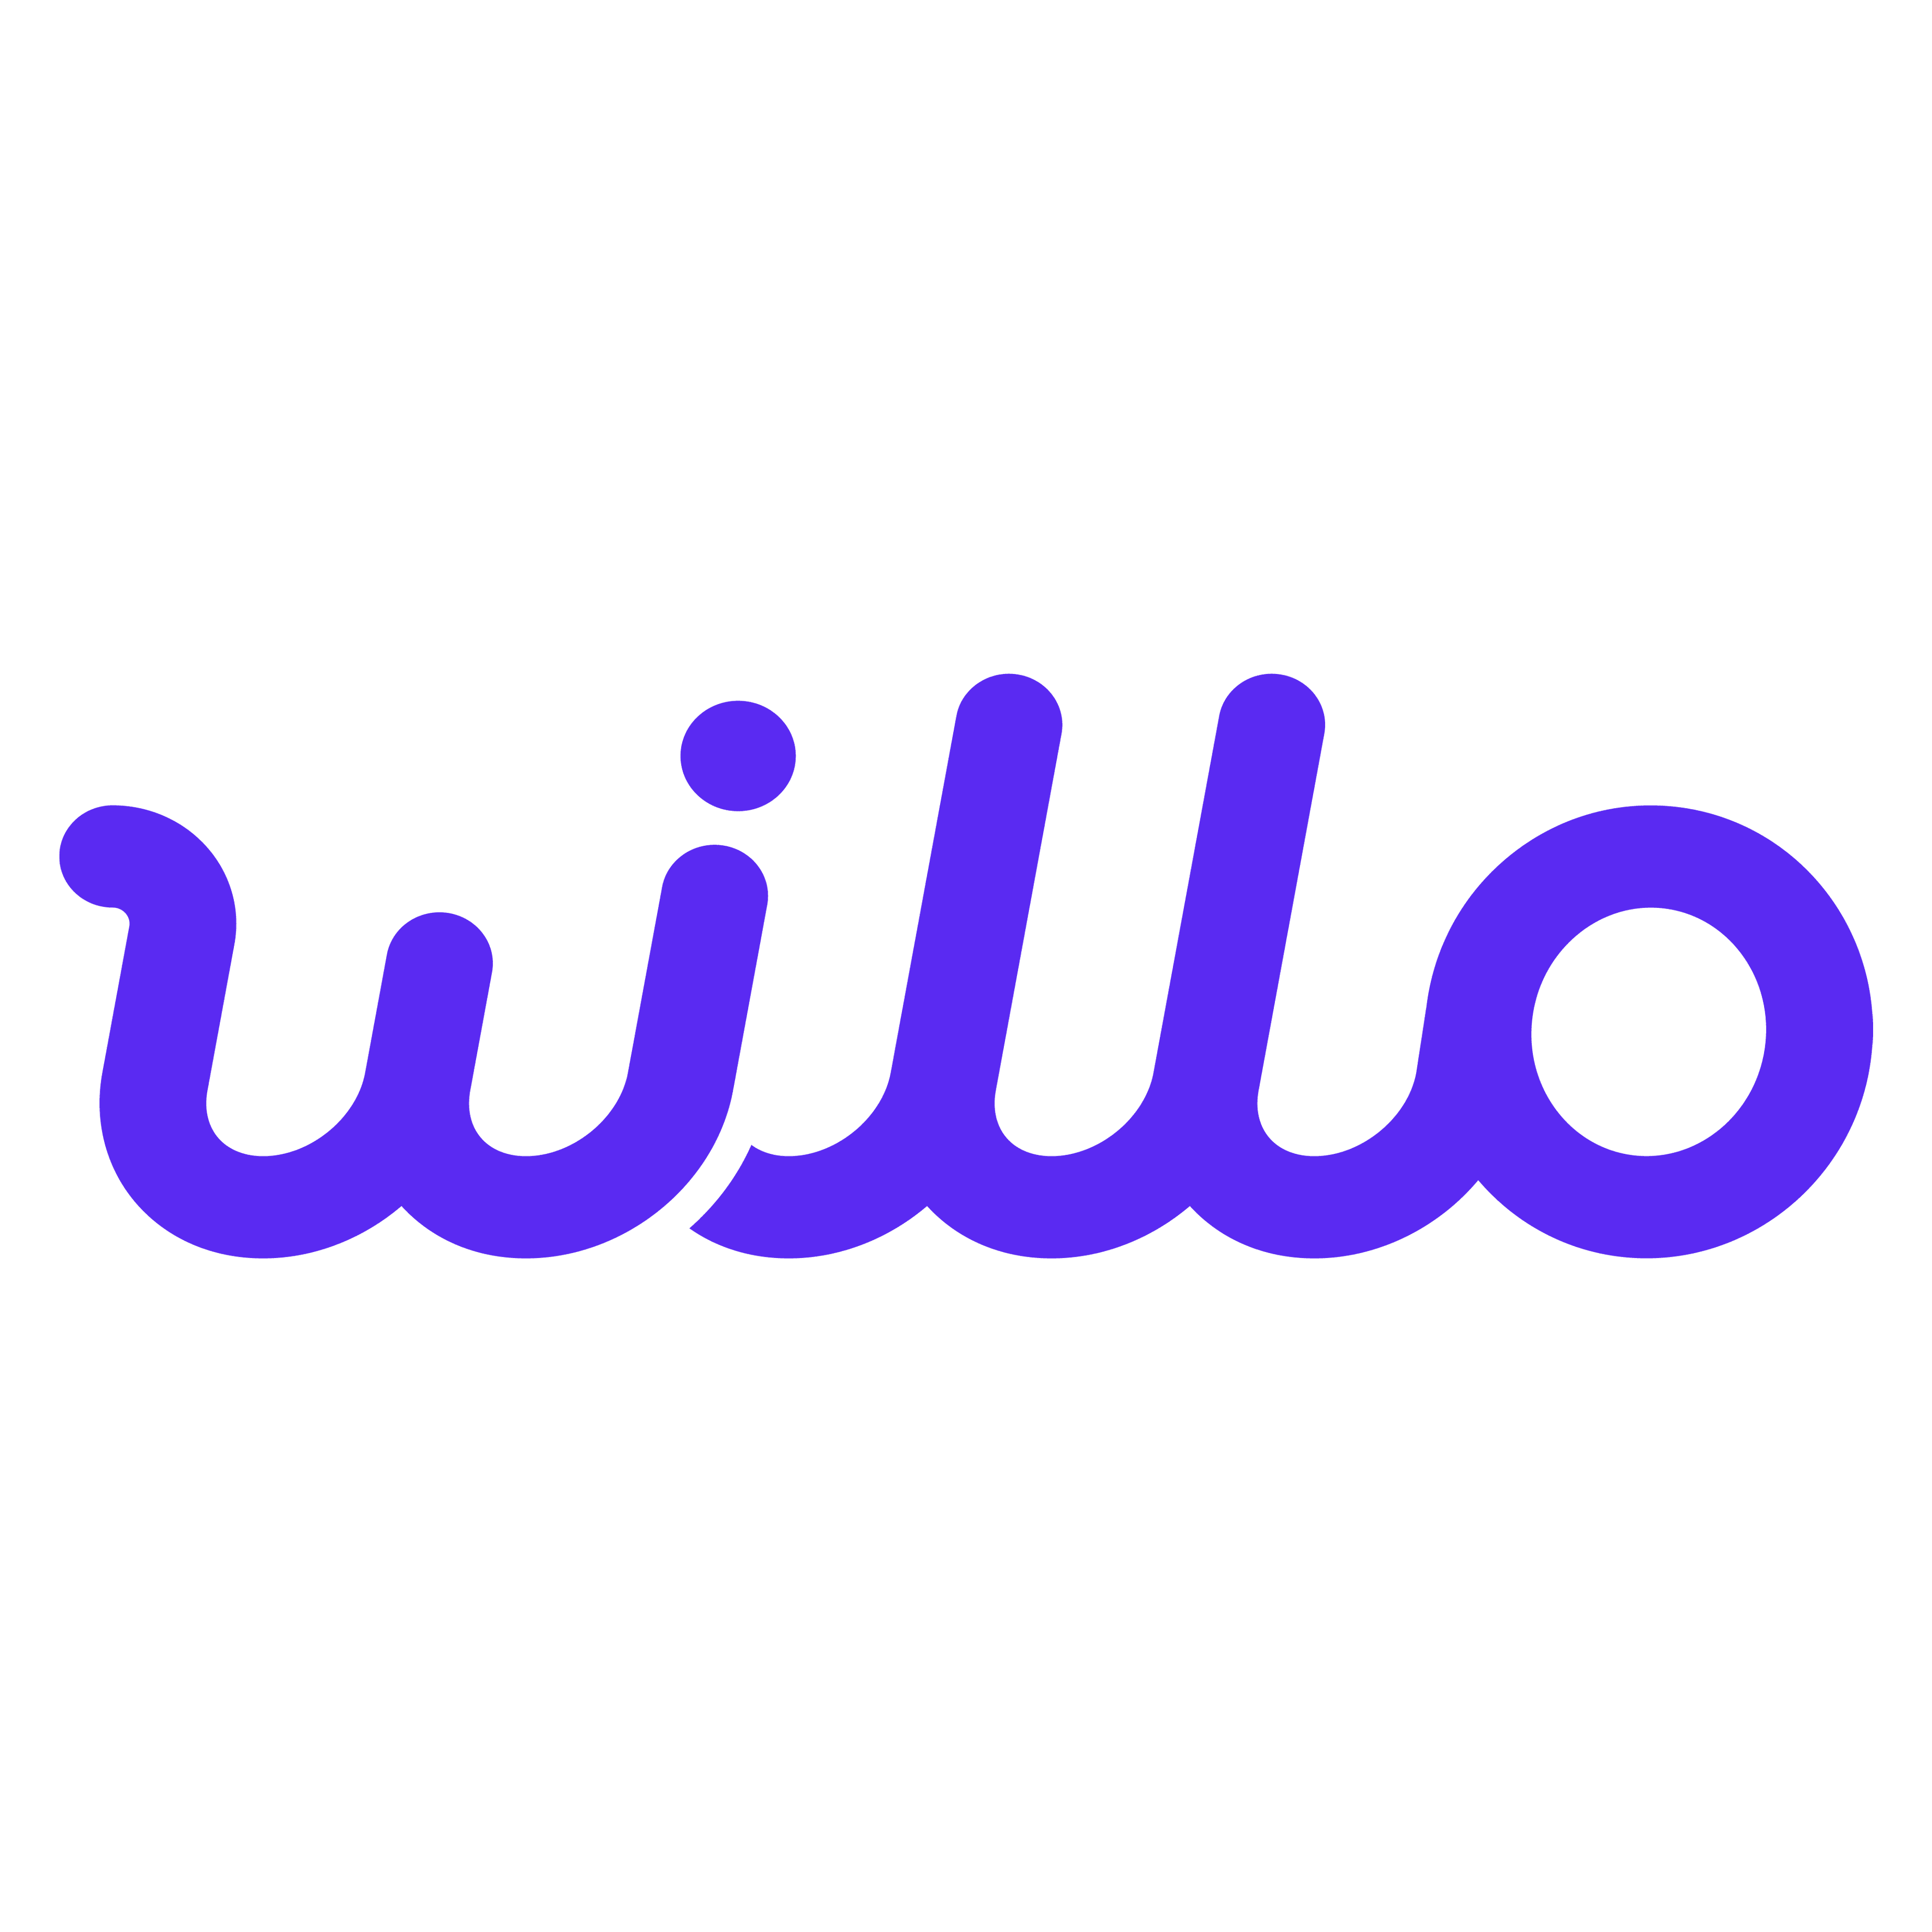 Simple video interviewing, at scale. Receive authentic video responses to your questions remotely from candidates, anywhere, anytime. Willo integrates with Zapier, is available in 100+ countries and fully GDPR compliant. Create a free account and discover top talent in less time. Say goodbye to scheduling tedious screening calls with candidates.